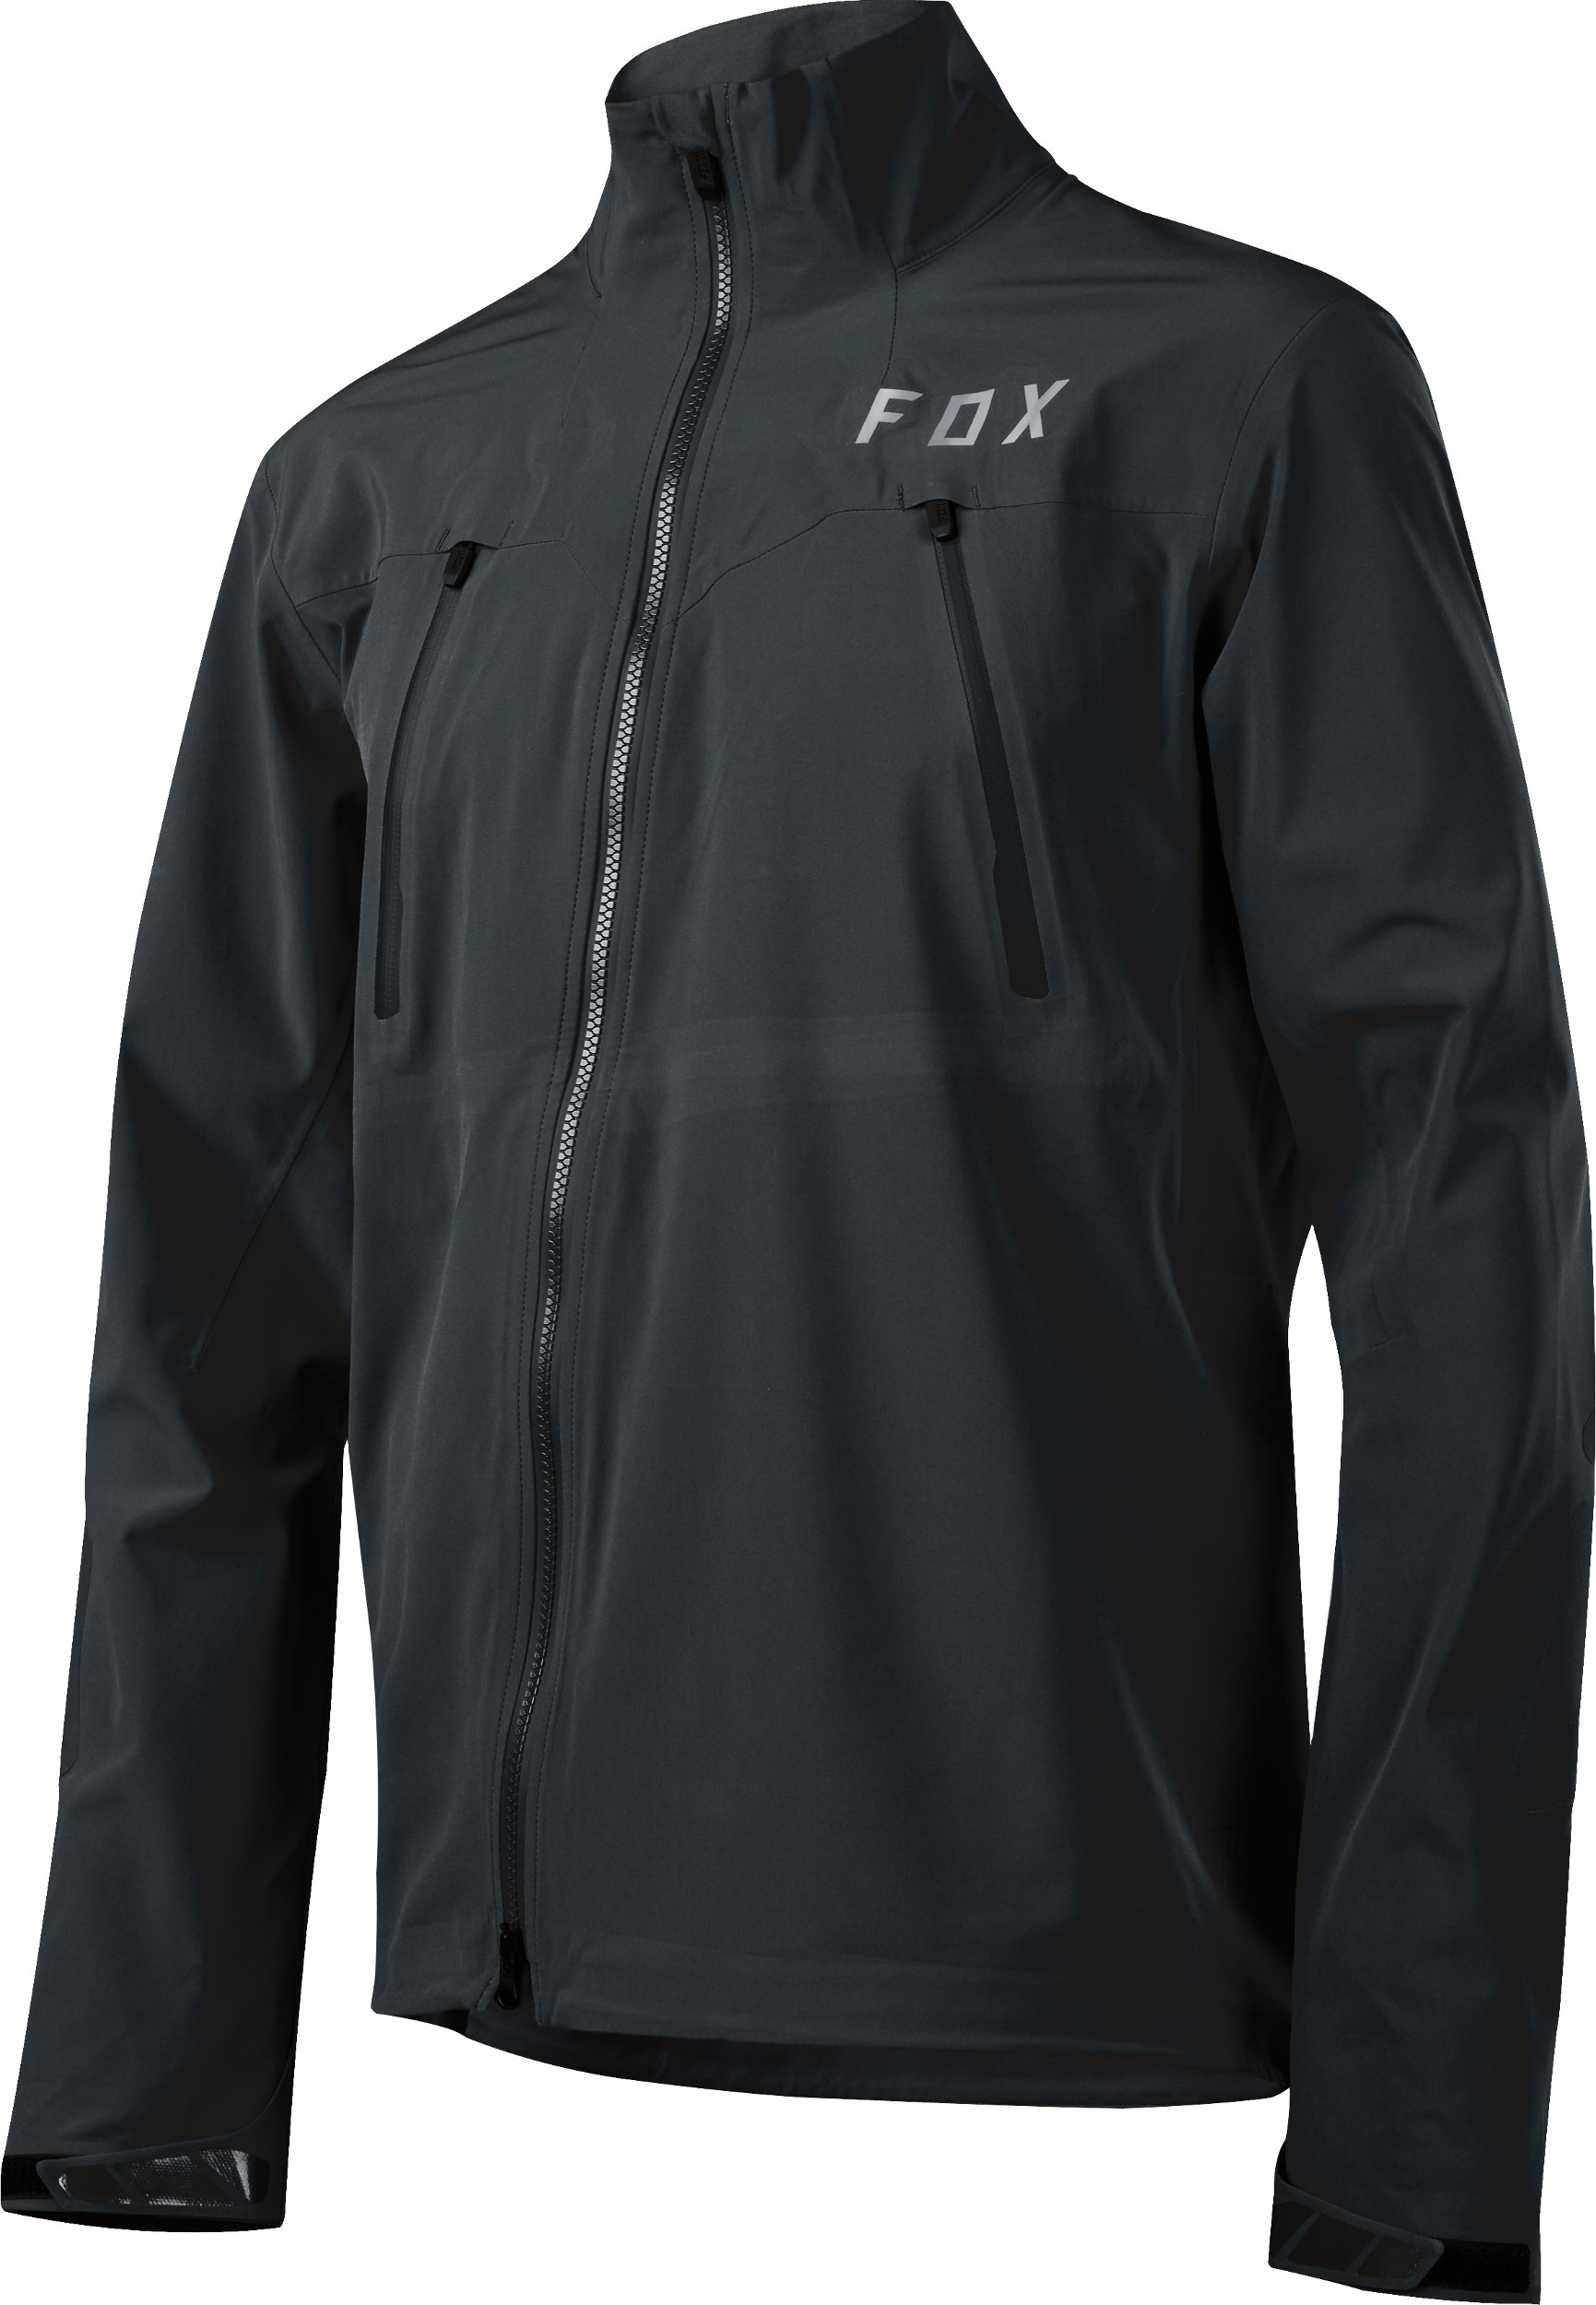 Fox Youth Ranger Dri-release Ss Jersey Black